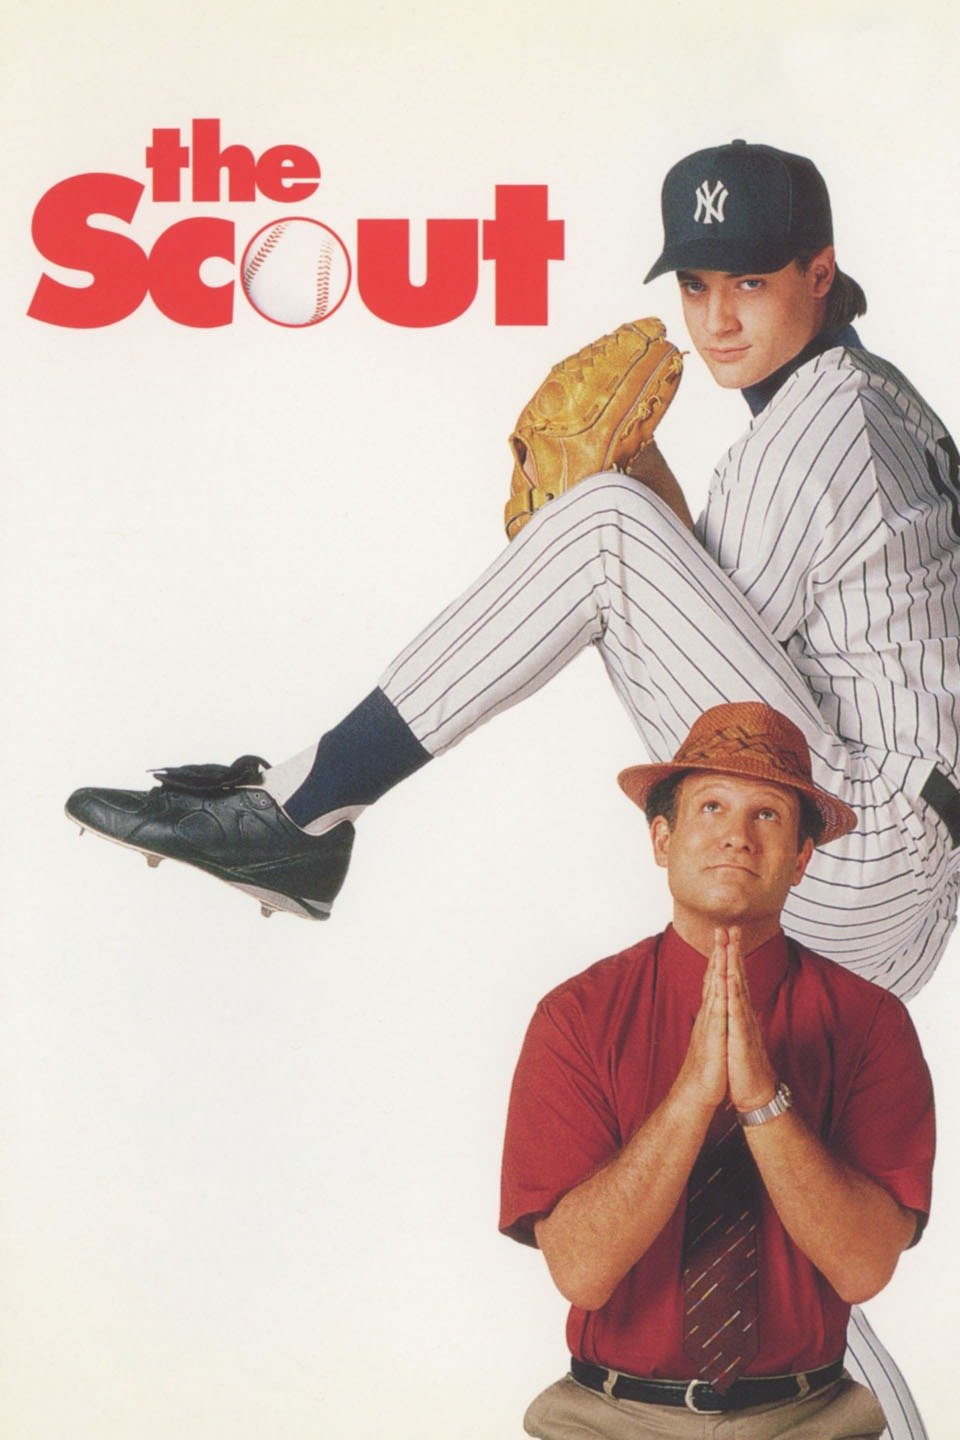 best baseball movies - the scout